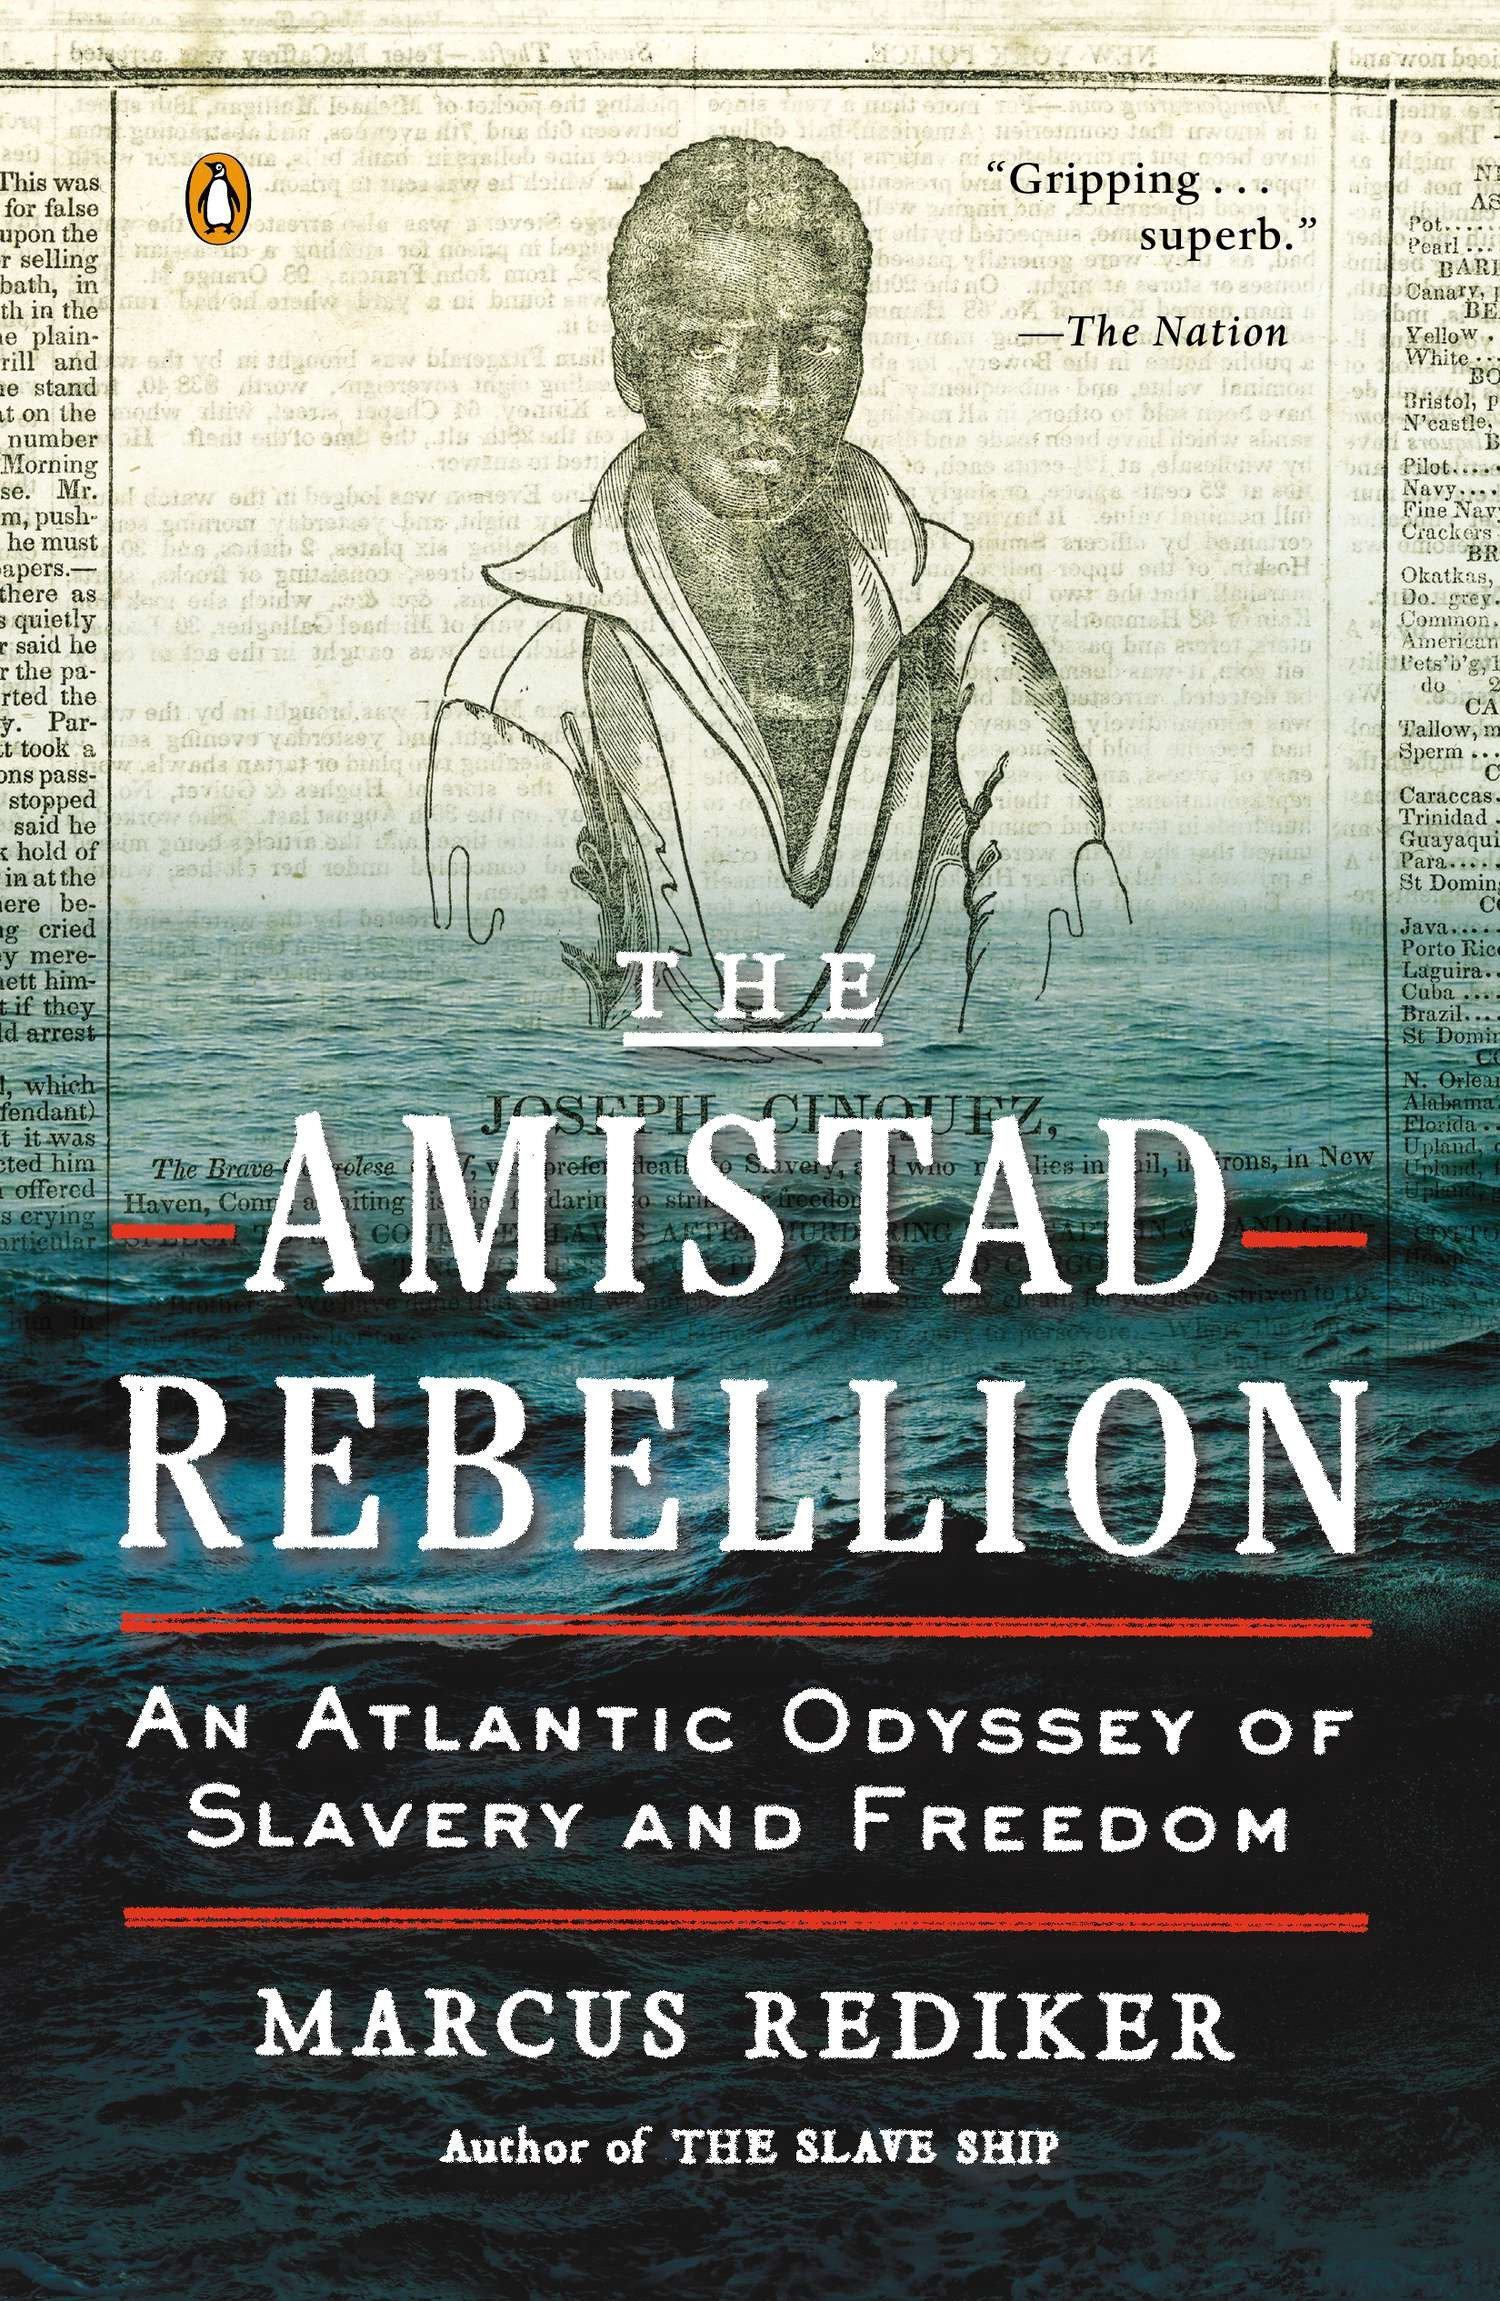 The Amistad Rebellion An Atlantic Odyssey of Slavery and Freedom